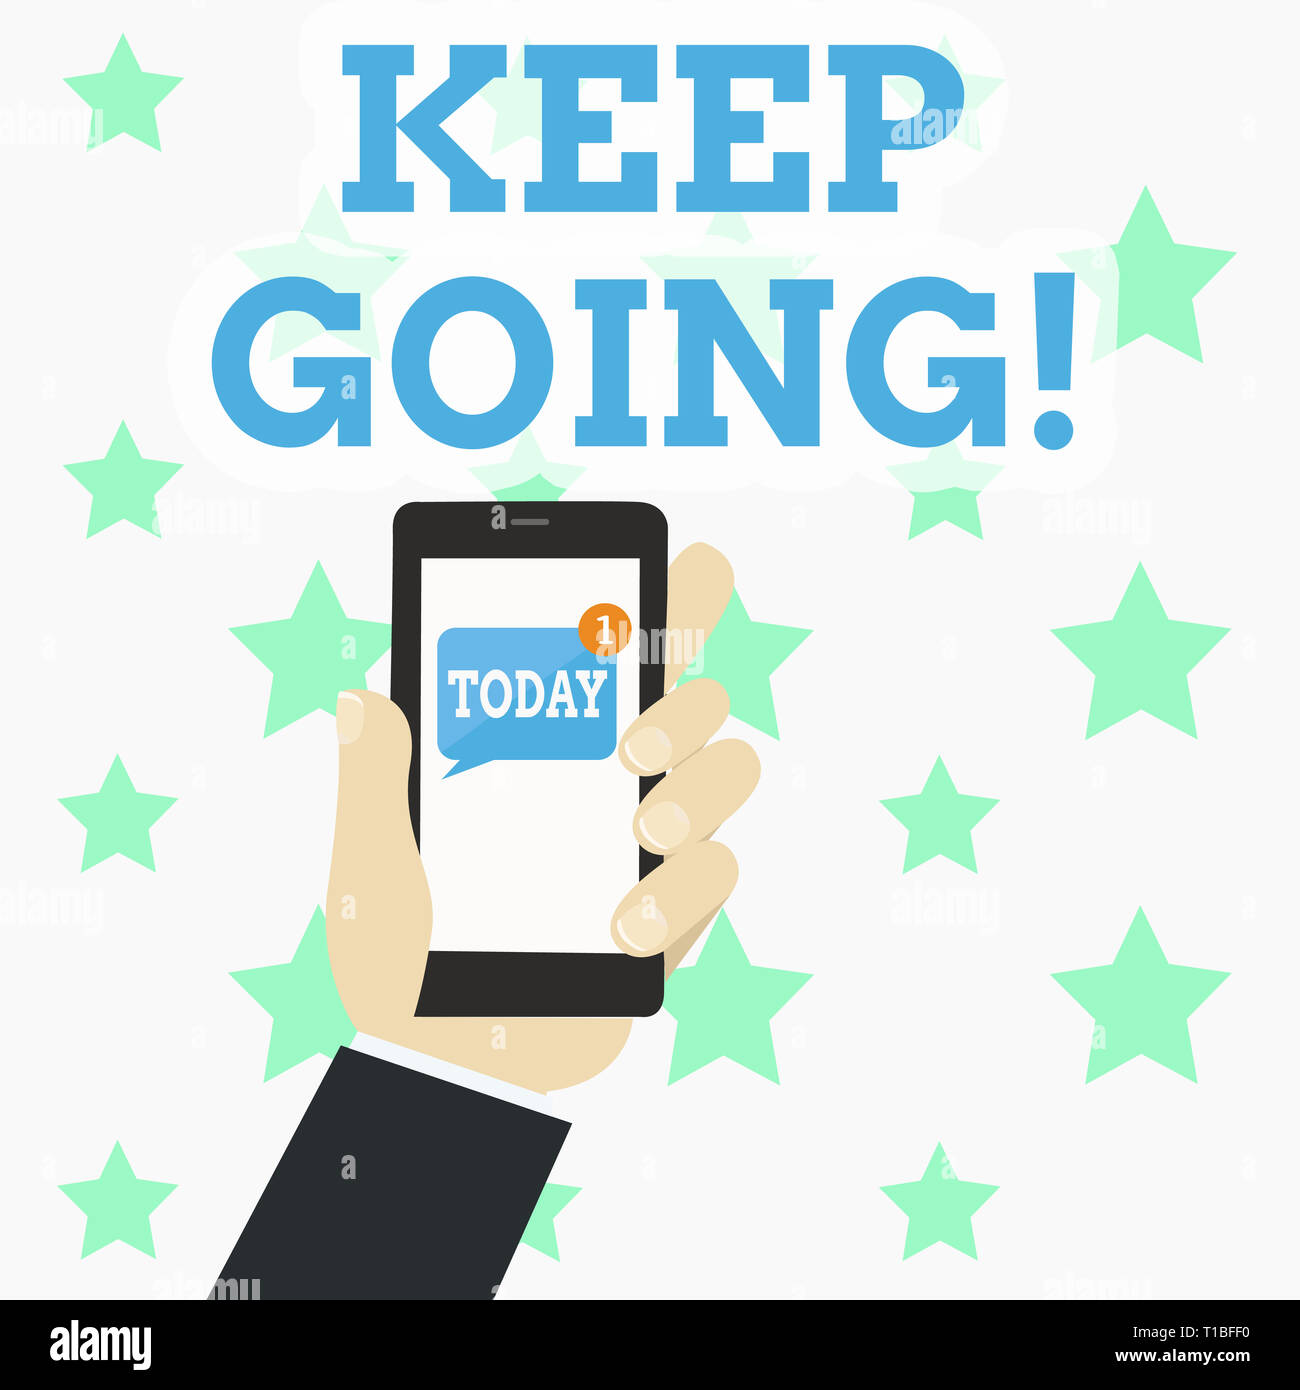 Writing note showing Keep Going. Business concept for make effort to live normally in spite of difficulty situation Human Hand Holding Smartphone with - Stock Image